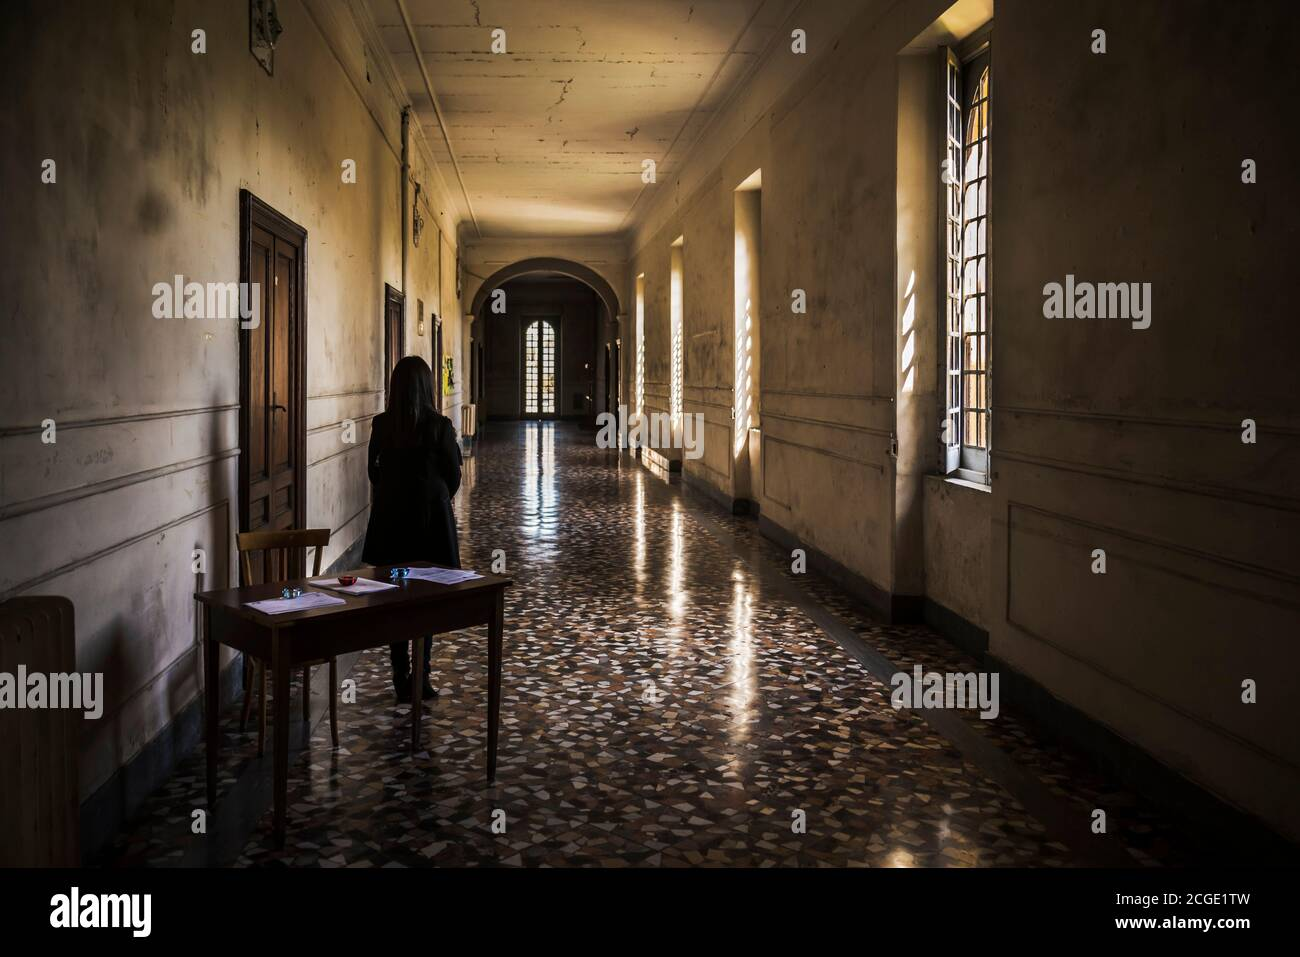 Internal Spaces Into The Abandoned Insane Asylum In Naples Italy Stock Photo Alamy